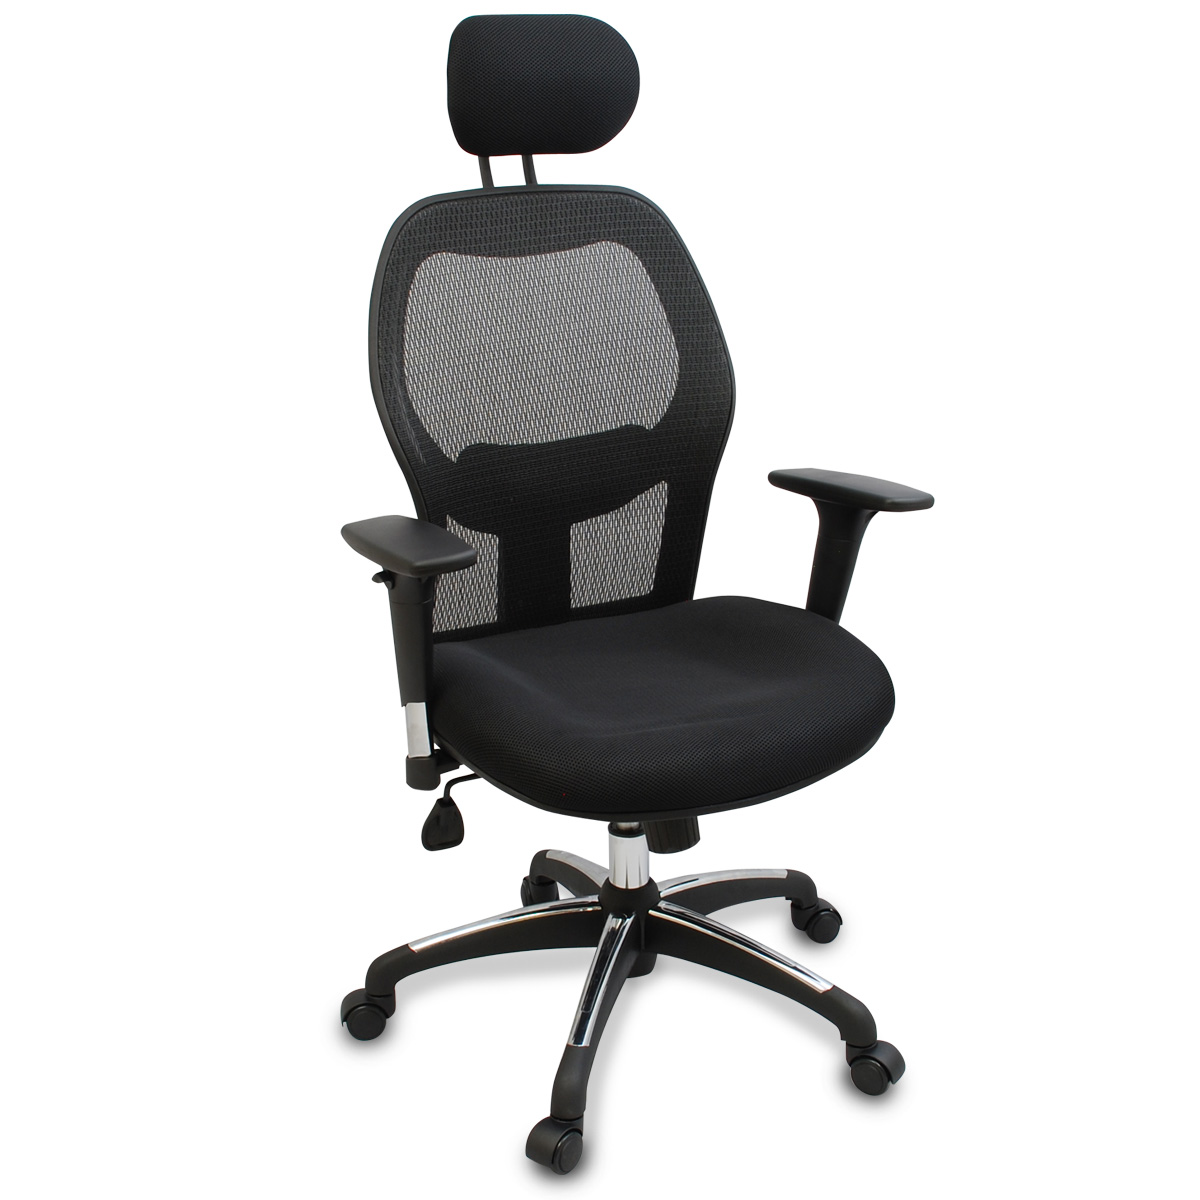 office chair wheels hardwood floors conference table and chairs new mesh reclining w no scuff rubber